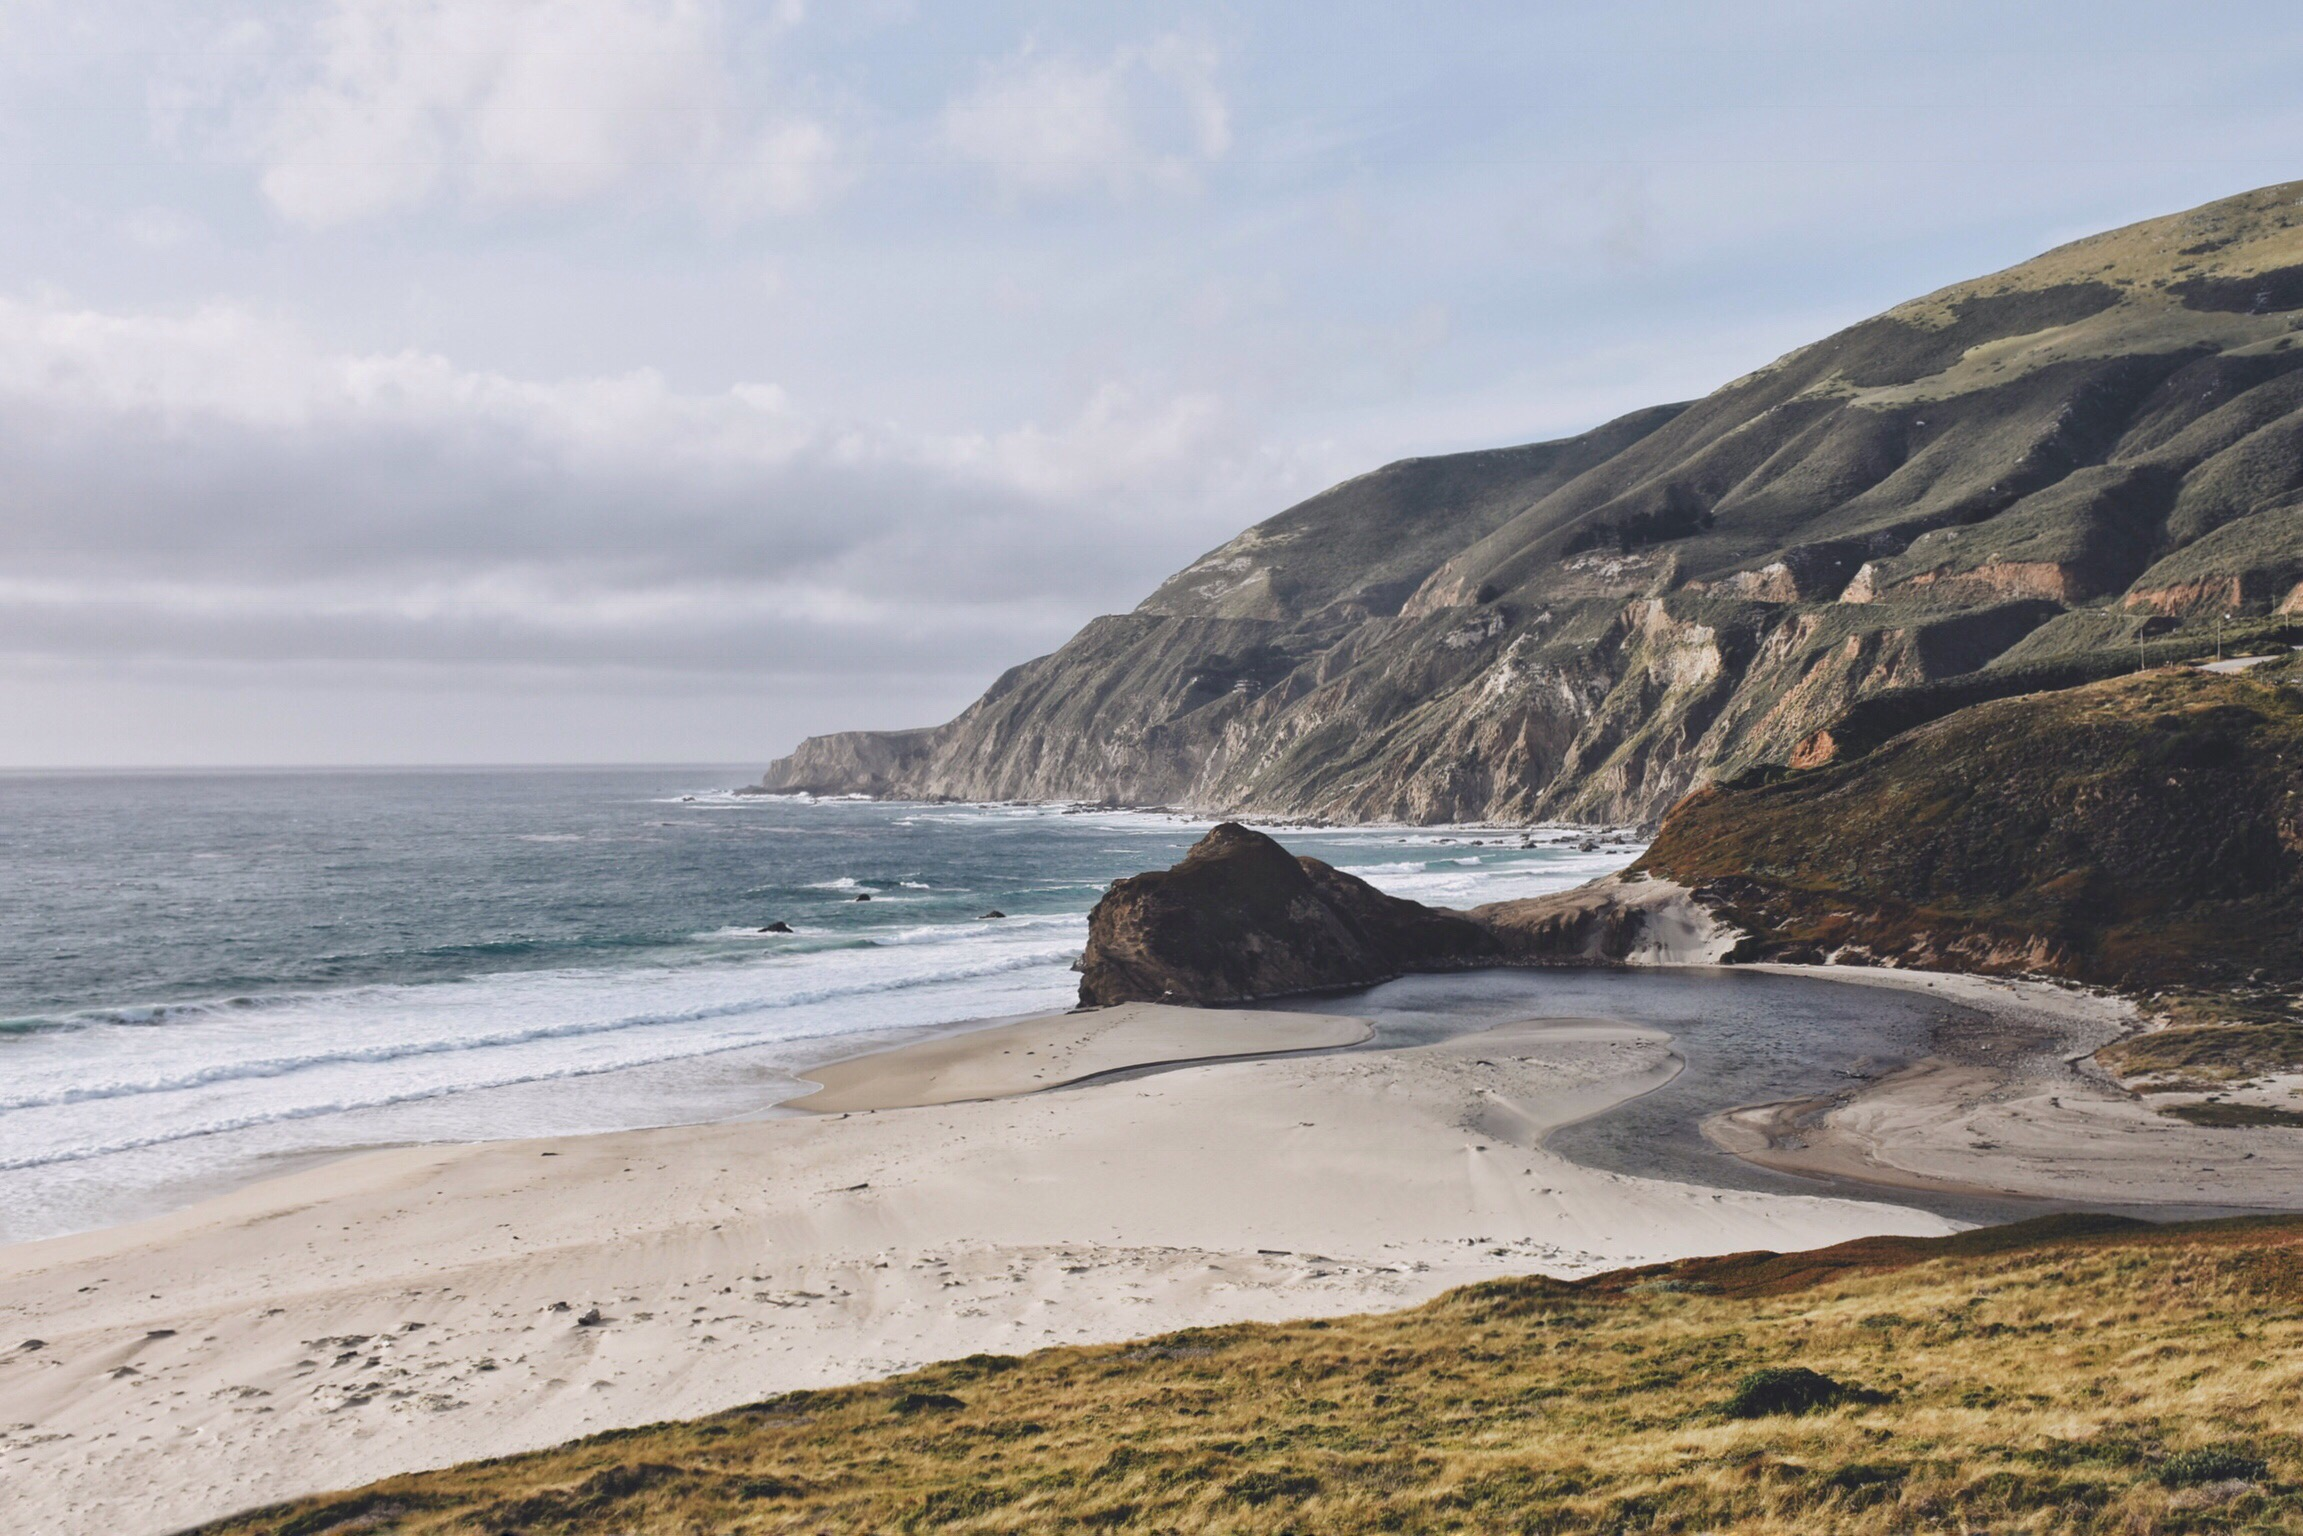 Want to tell people that you had an entire beachfront to yourself for a day? Head to Big Sur...it is always this quite!